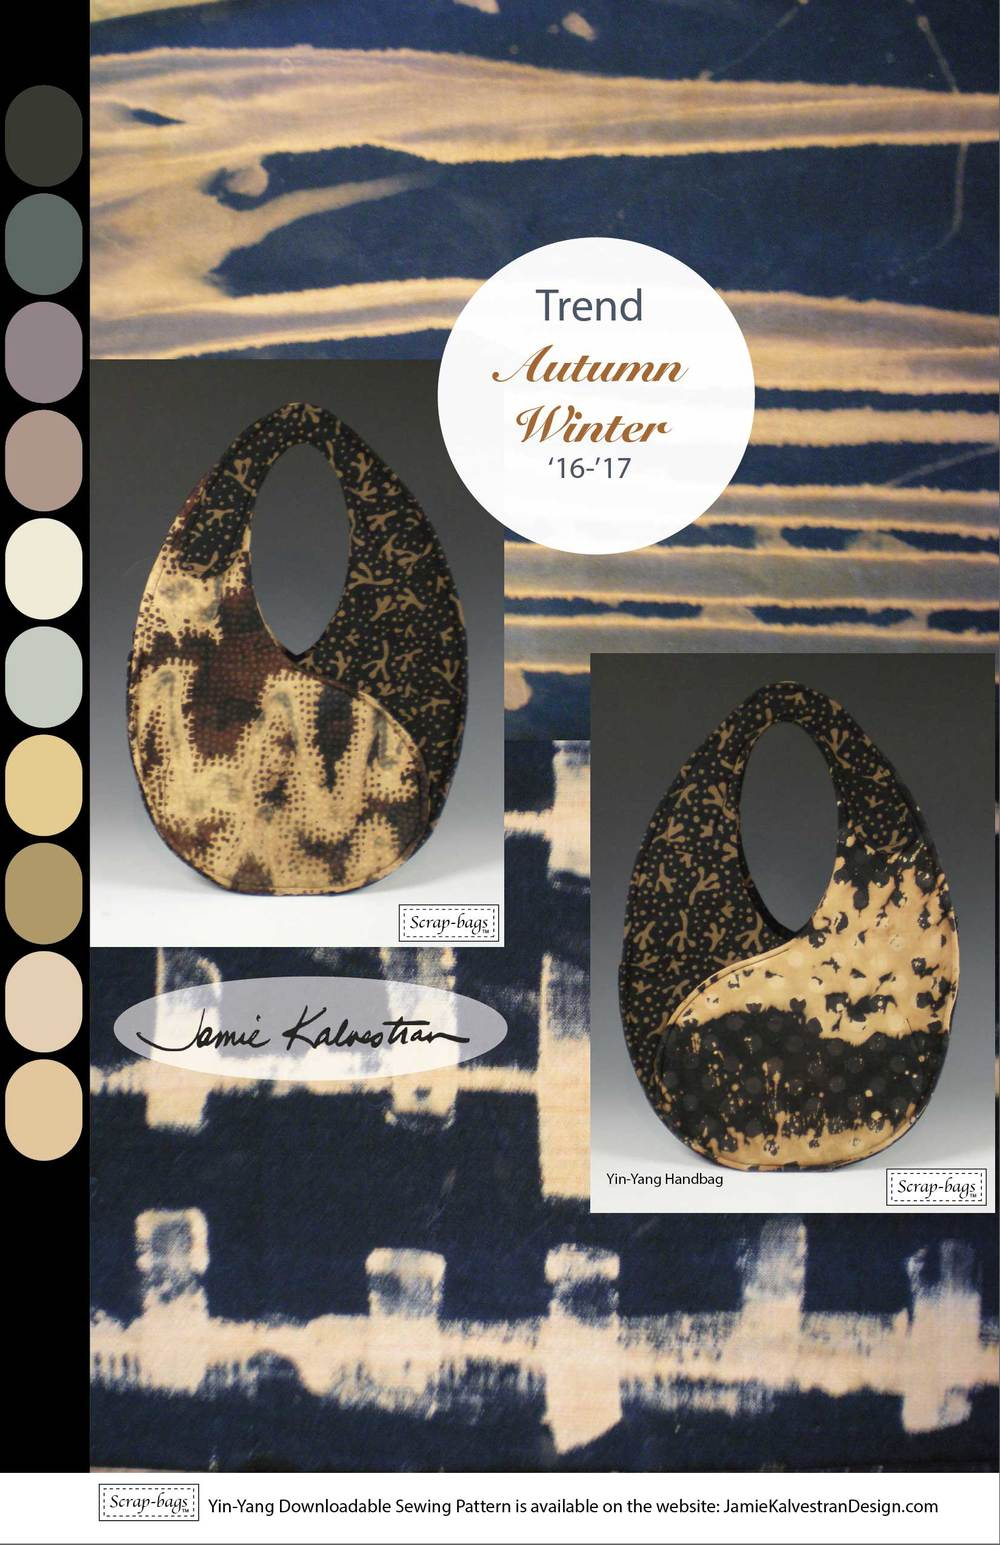 Trend for Autumn Winter 2016-17, and you will find the Scrap-bags Yin-Yang Handbag Sewing Pattern download is available here.